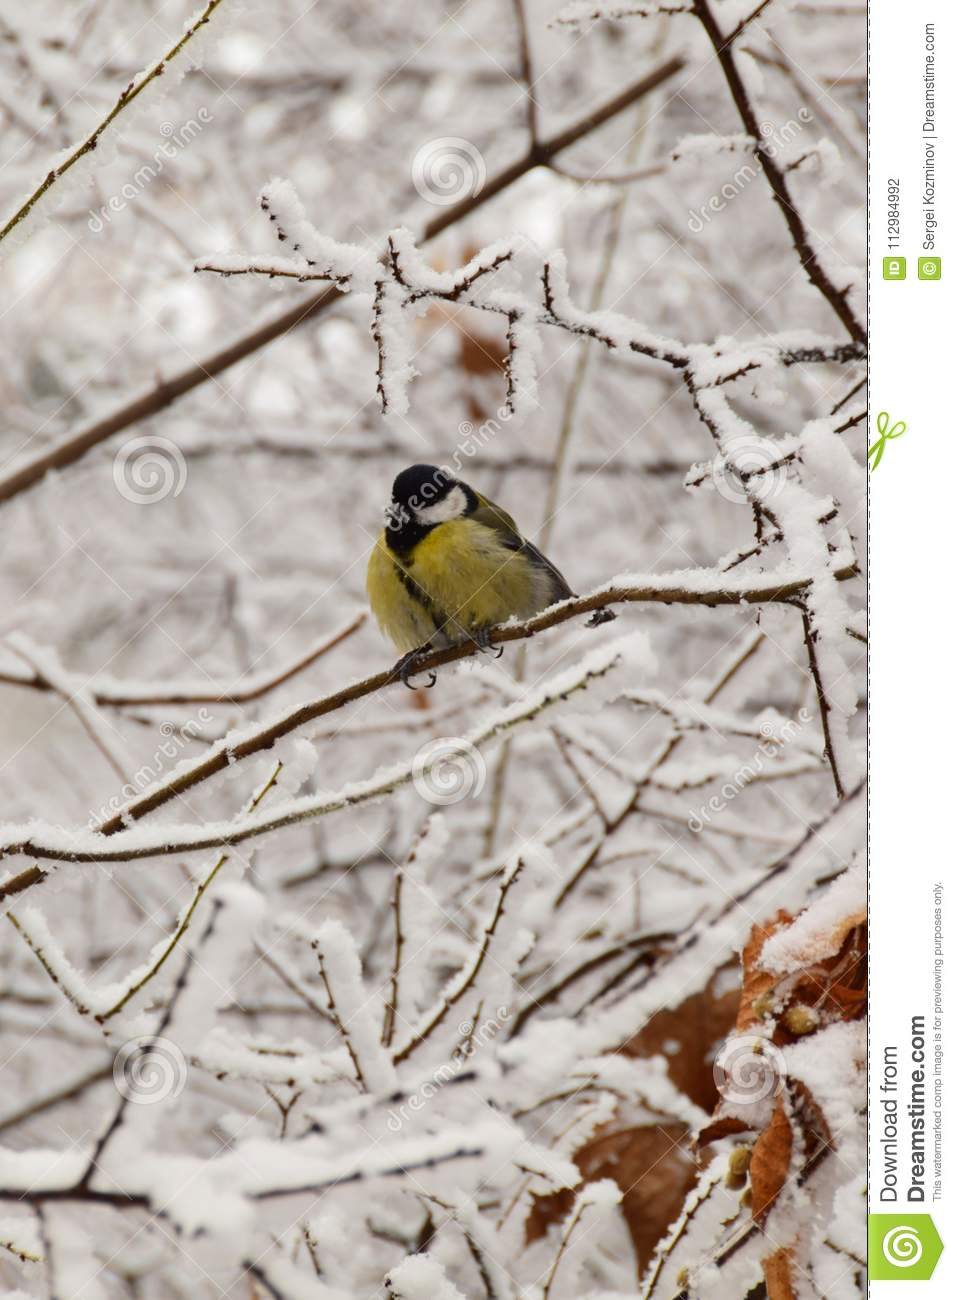 Frozen yellow Caucasian titmouse sitting in snowy tree branches